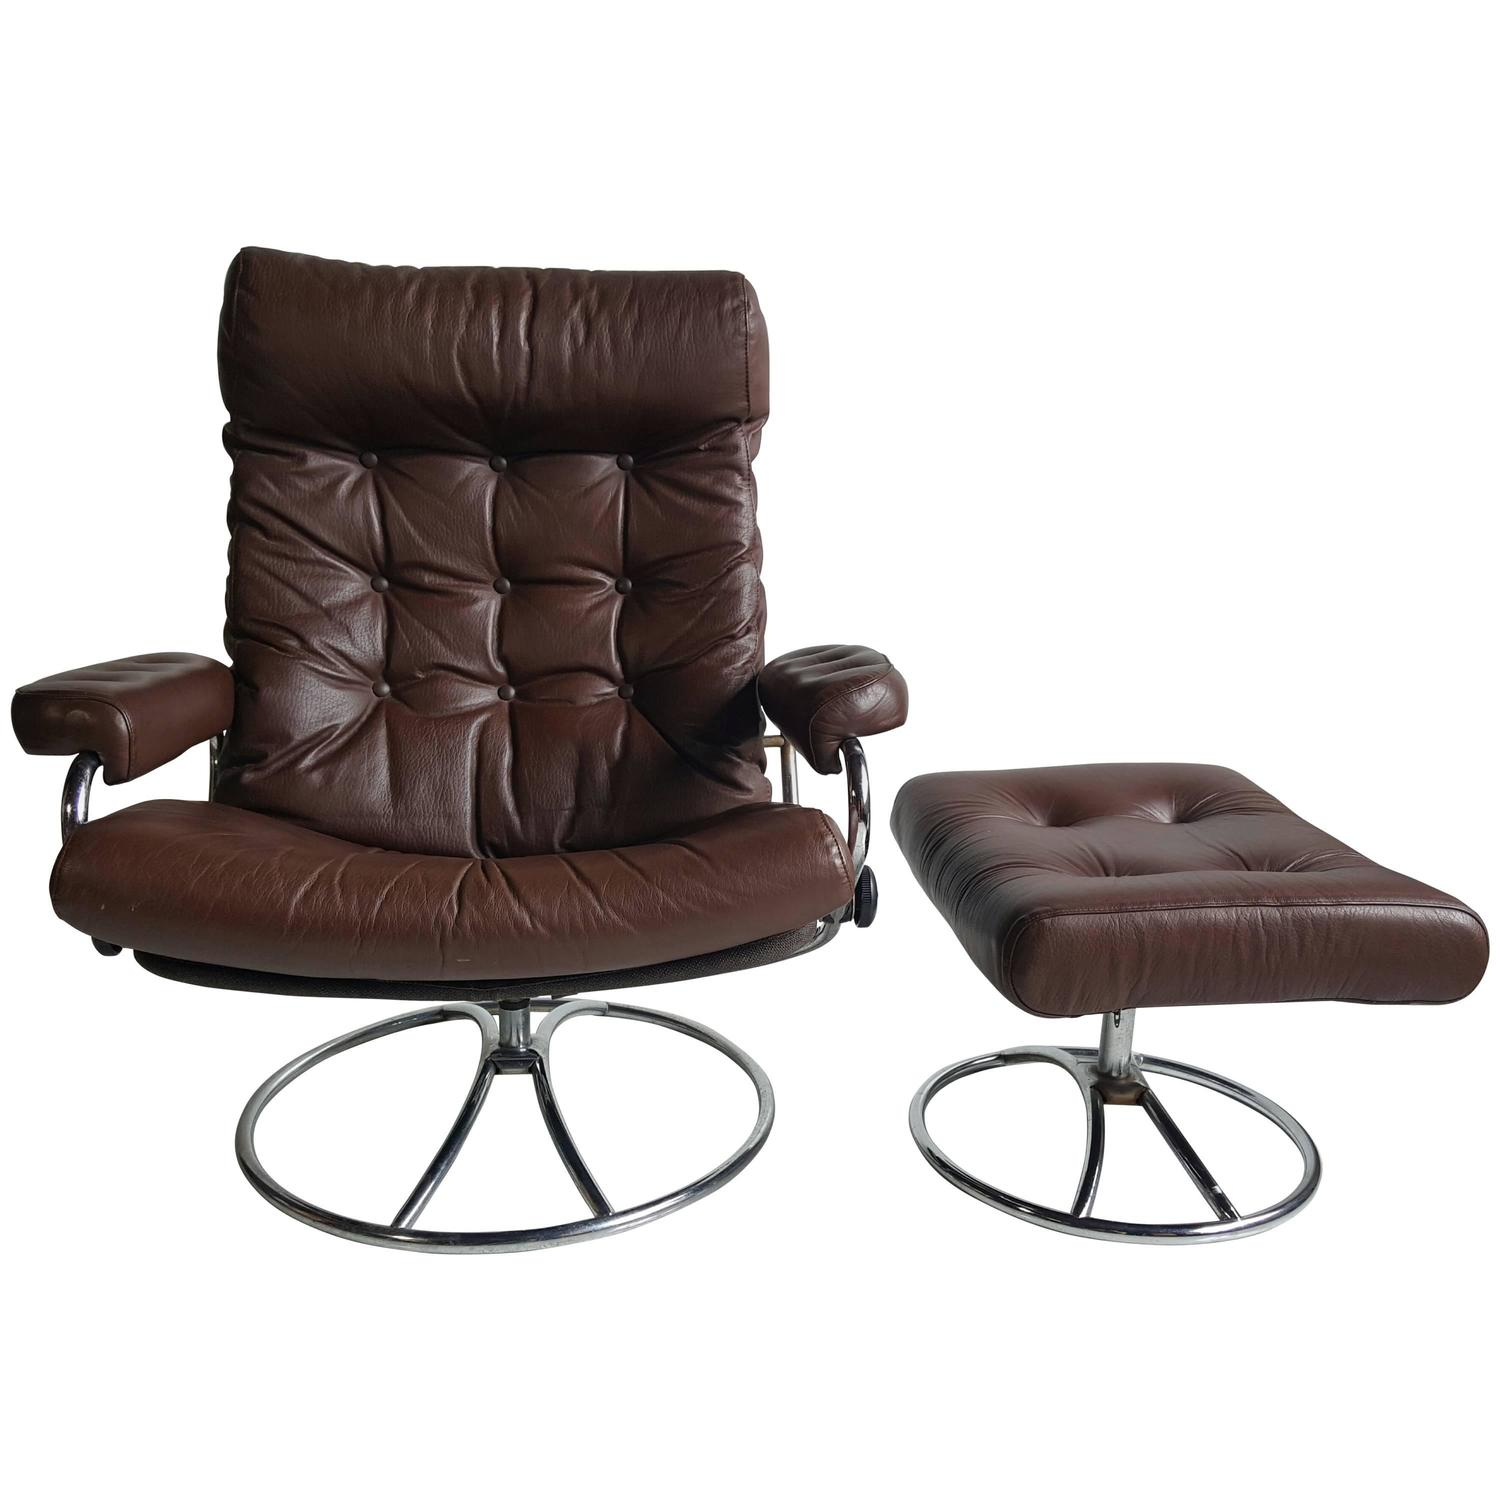 Brown Leather Ekornes Stressless Lounge With Ottoman, 1960 At 1stdibs